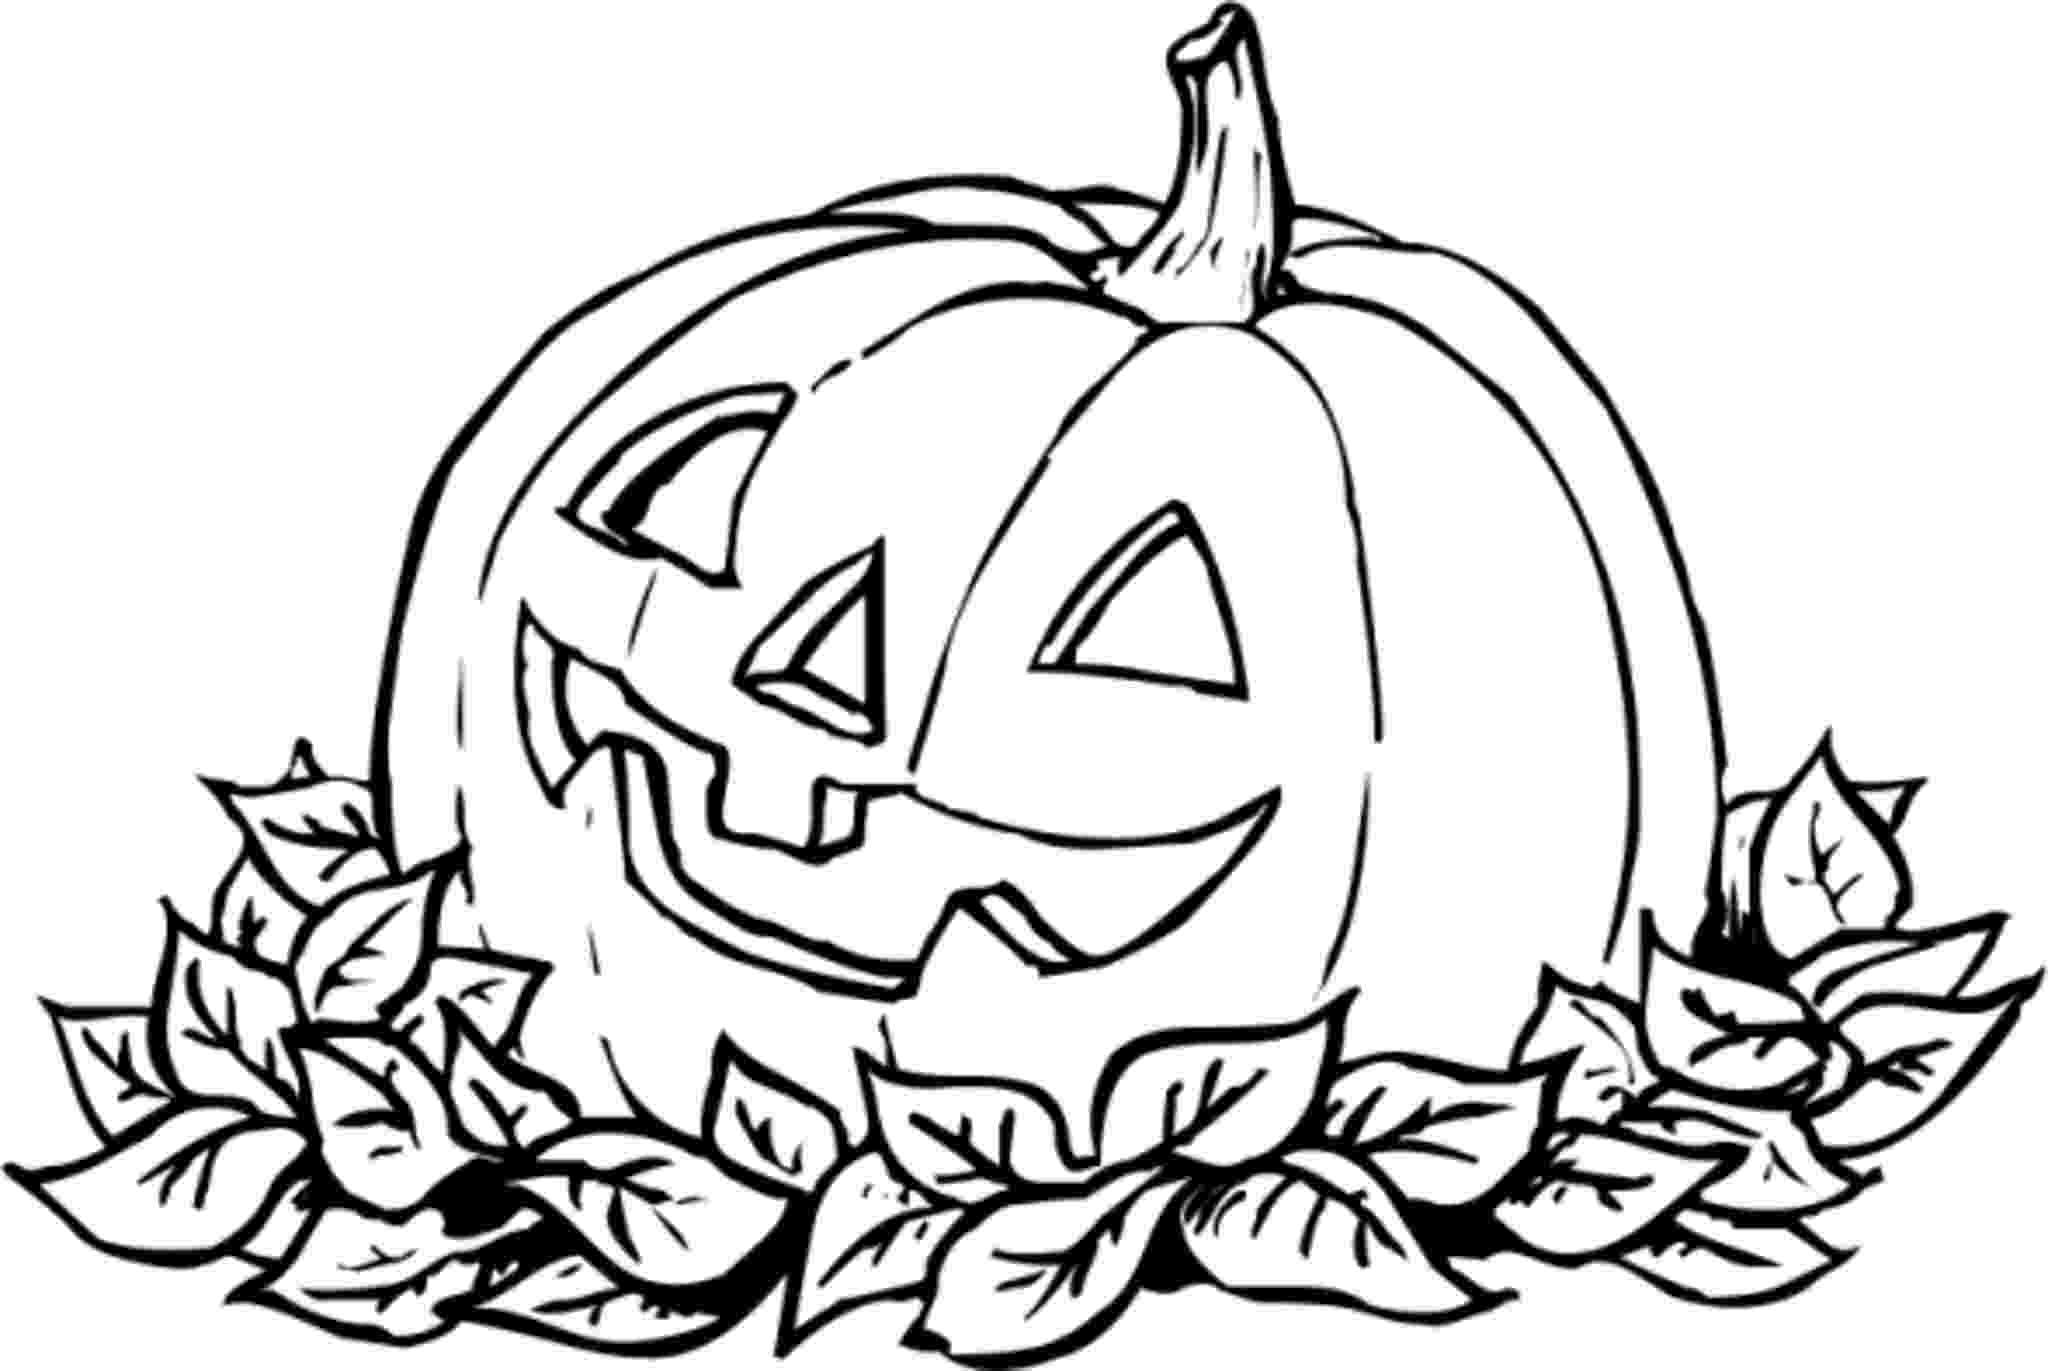 pumkin coloring pages print download pumpkin coloring pages and benefits of coloring pumkin pages